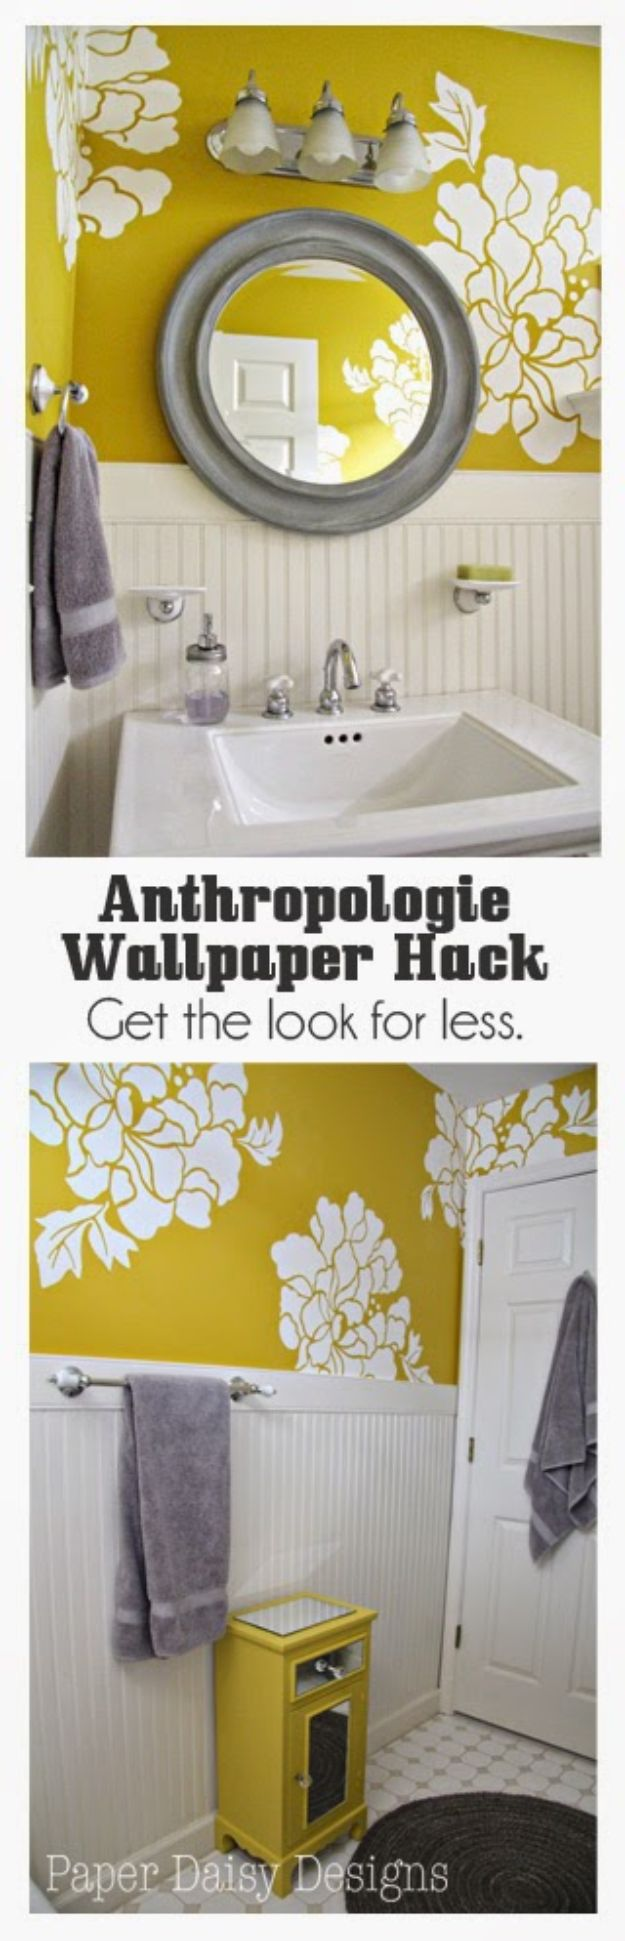 Anthropologie DIY Hacks, Clothes, Sewing Projects and Jewelry Fashion - Pillows, Bedding and Curtains - Tables and furniture - Mugs and Kitchen Decorations - DIY Room Decor and Cool Ideas for the Home | Anthropologie Wallpaper Hack